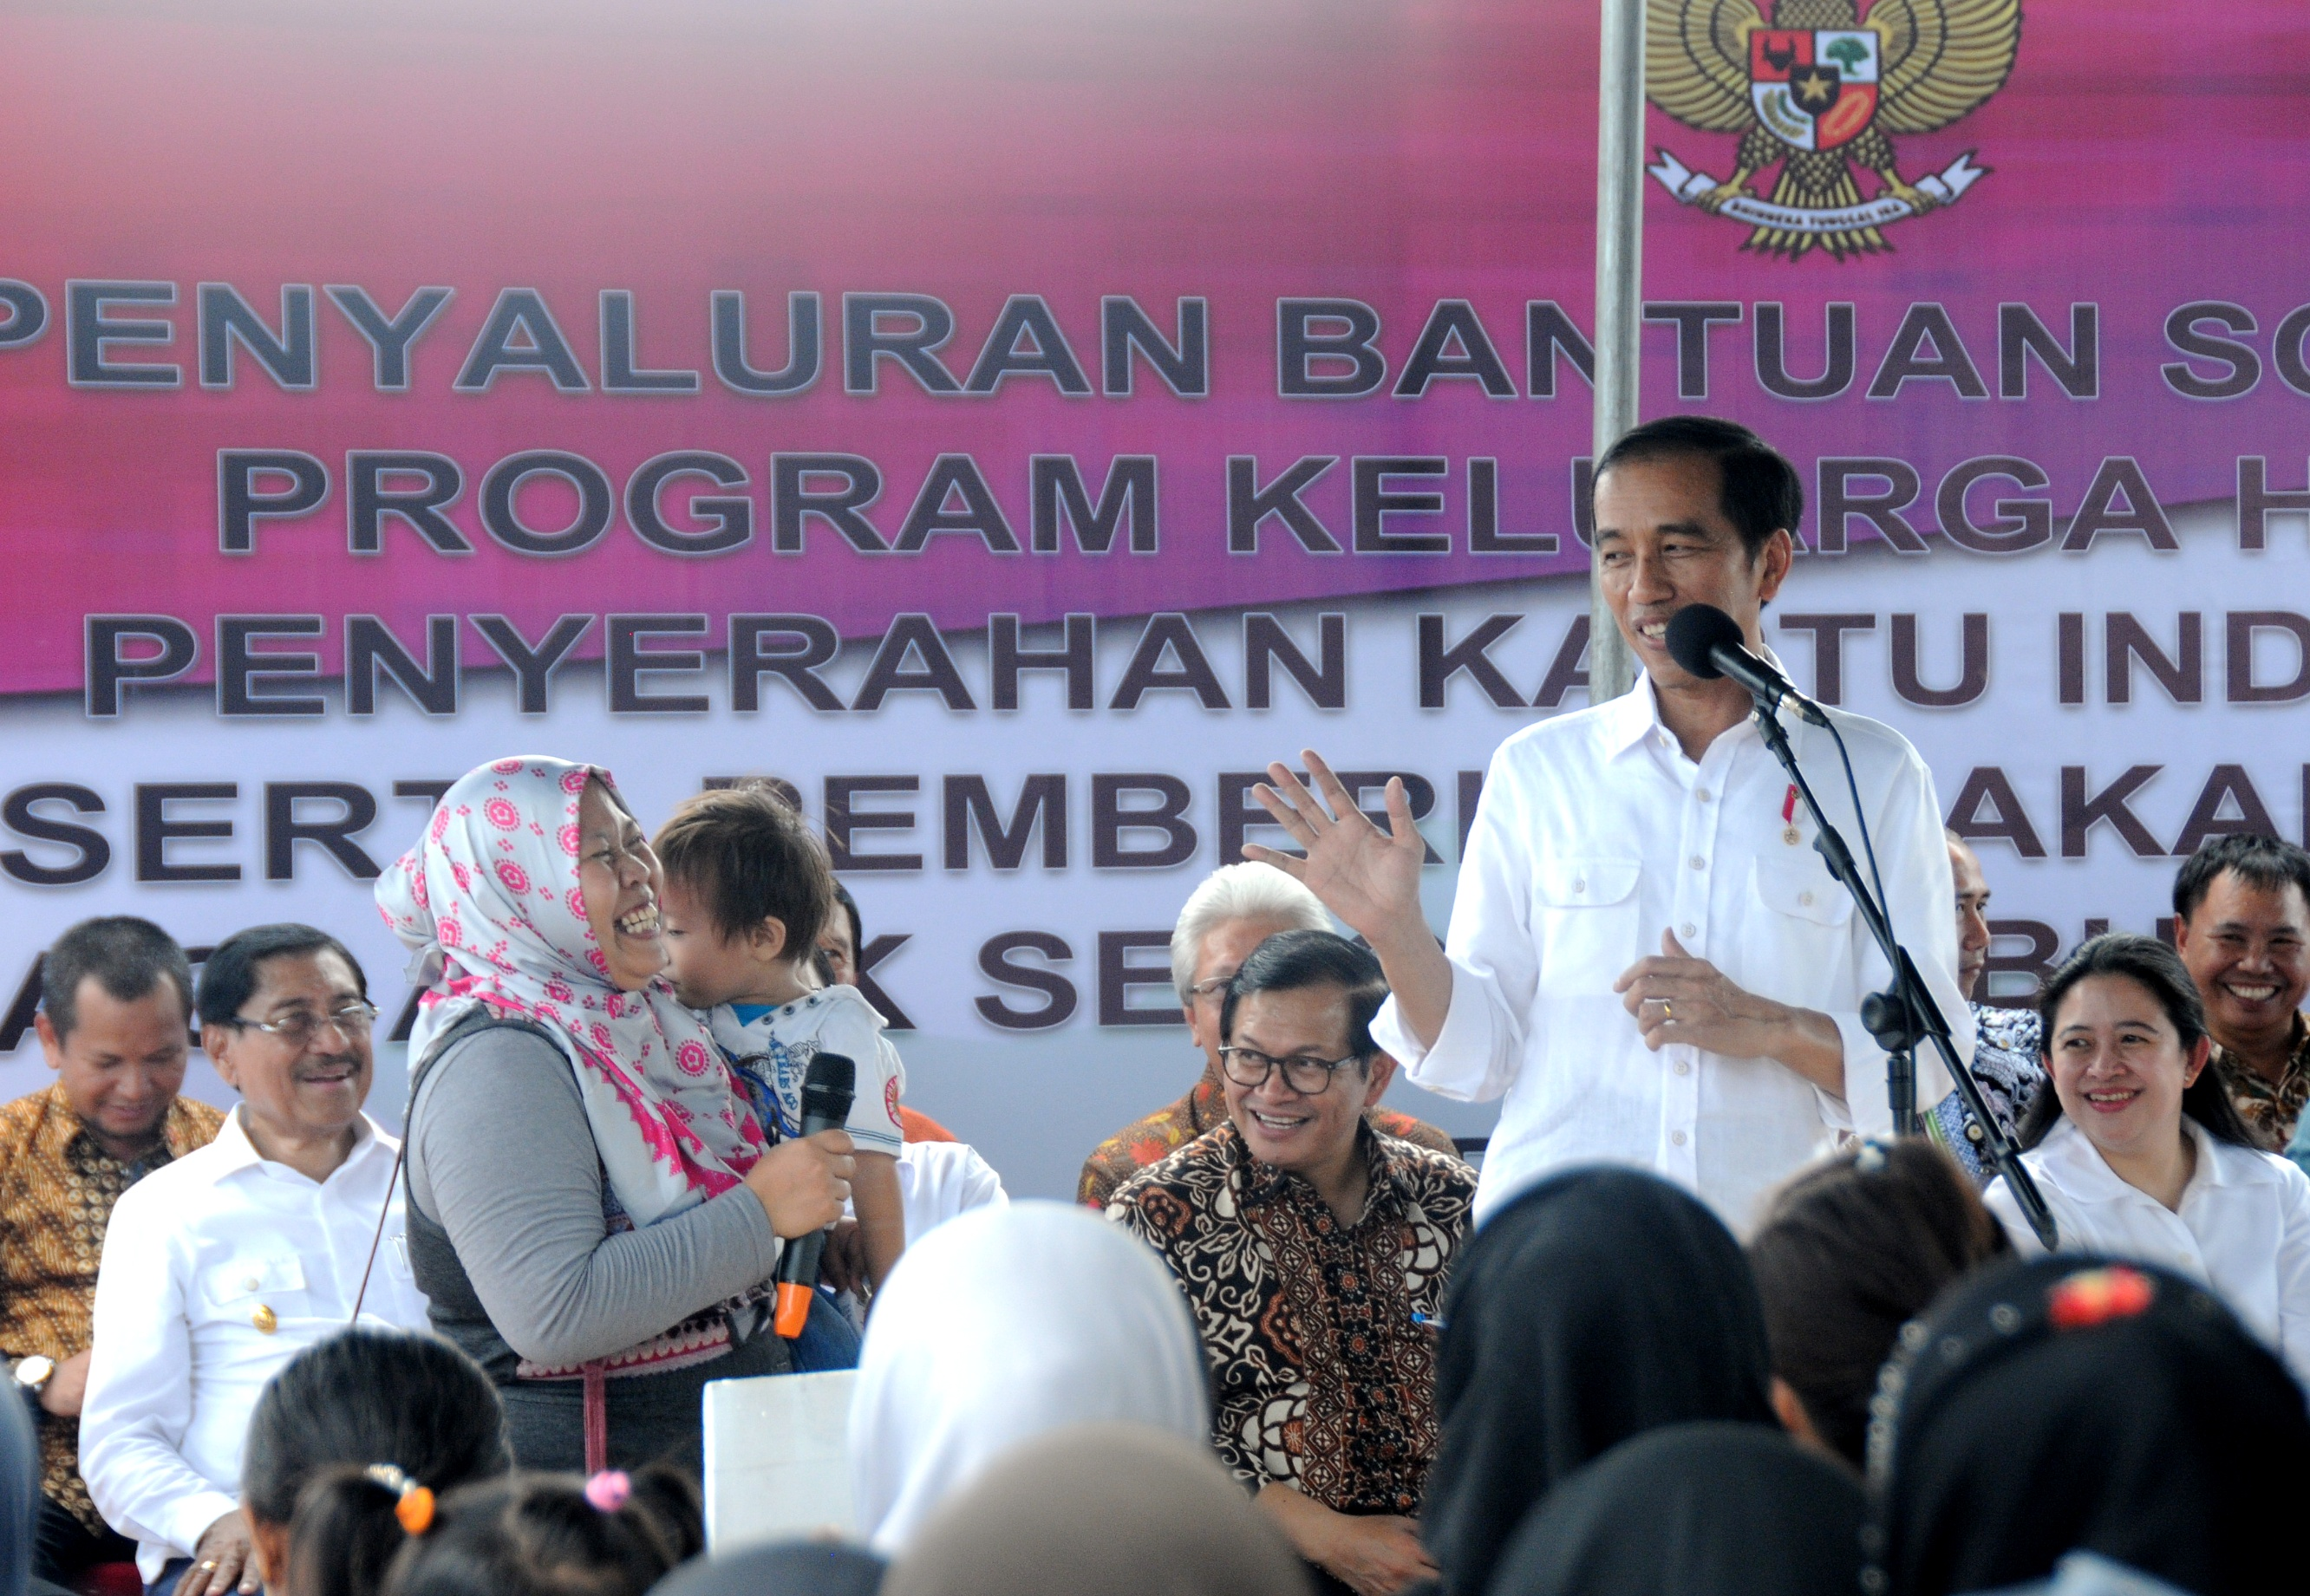 President Jokowi when distributing Aspiring Family Program (PKH), Healthy Indonesia Card (KIS), and Extra Nutrition Program for Children (PMT) in Ambon, Maluku, on Wednesday (8/2)